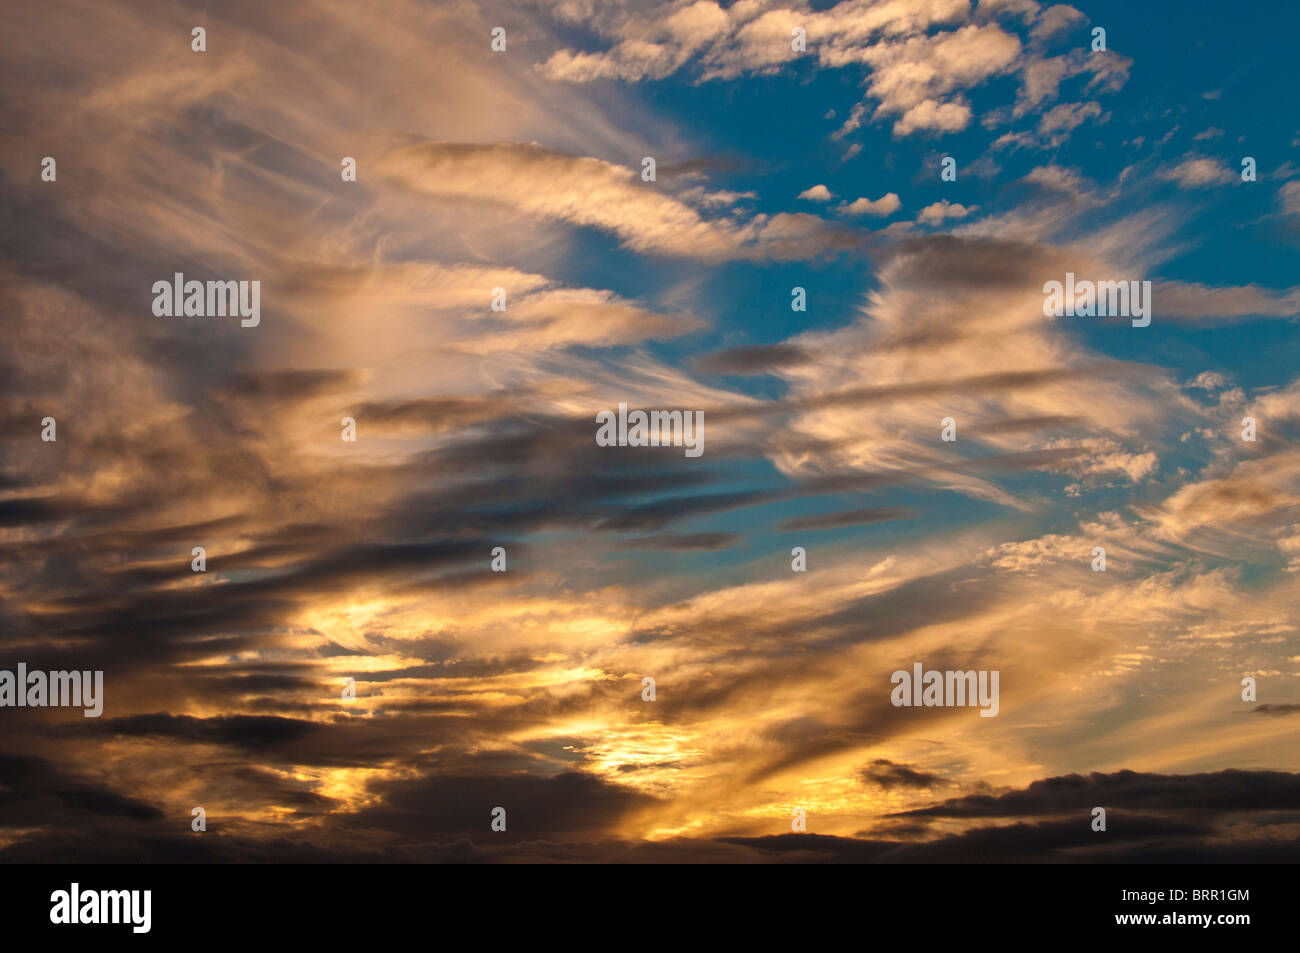 Cirrus clouds at sunset - Stock Image